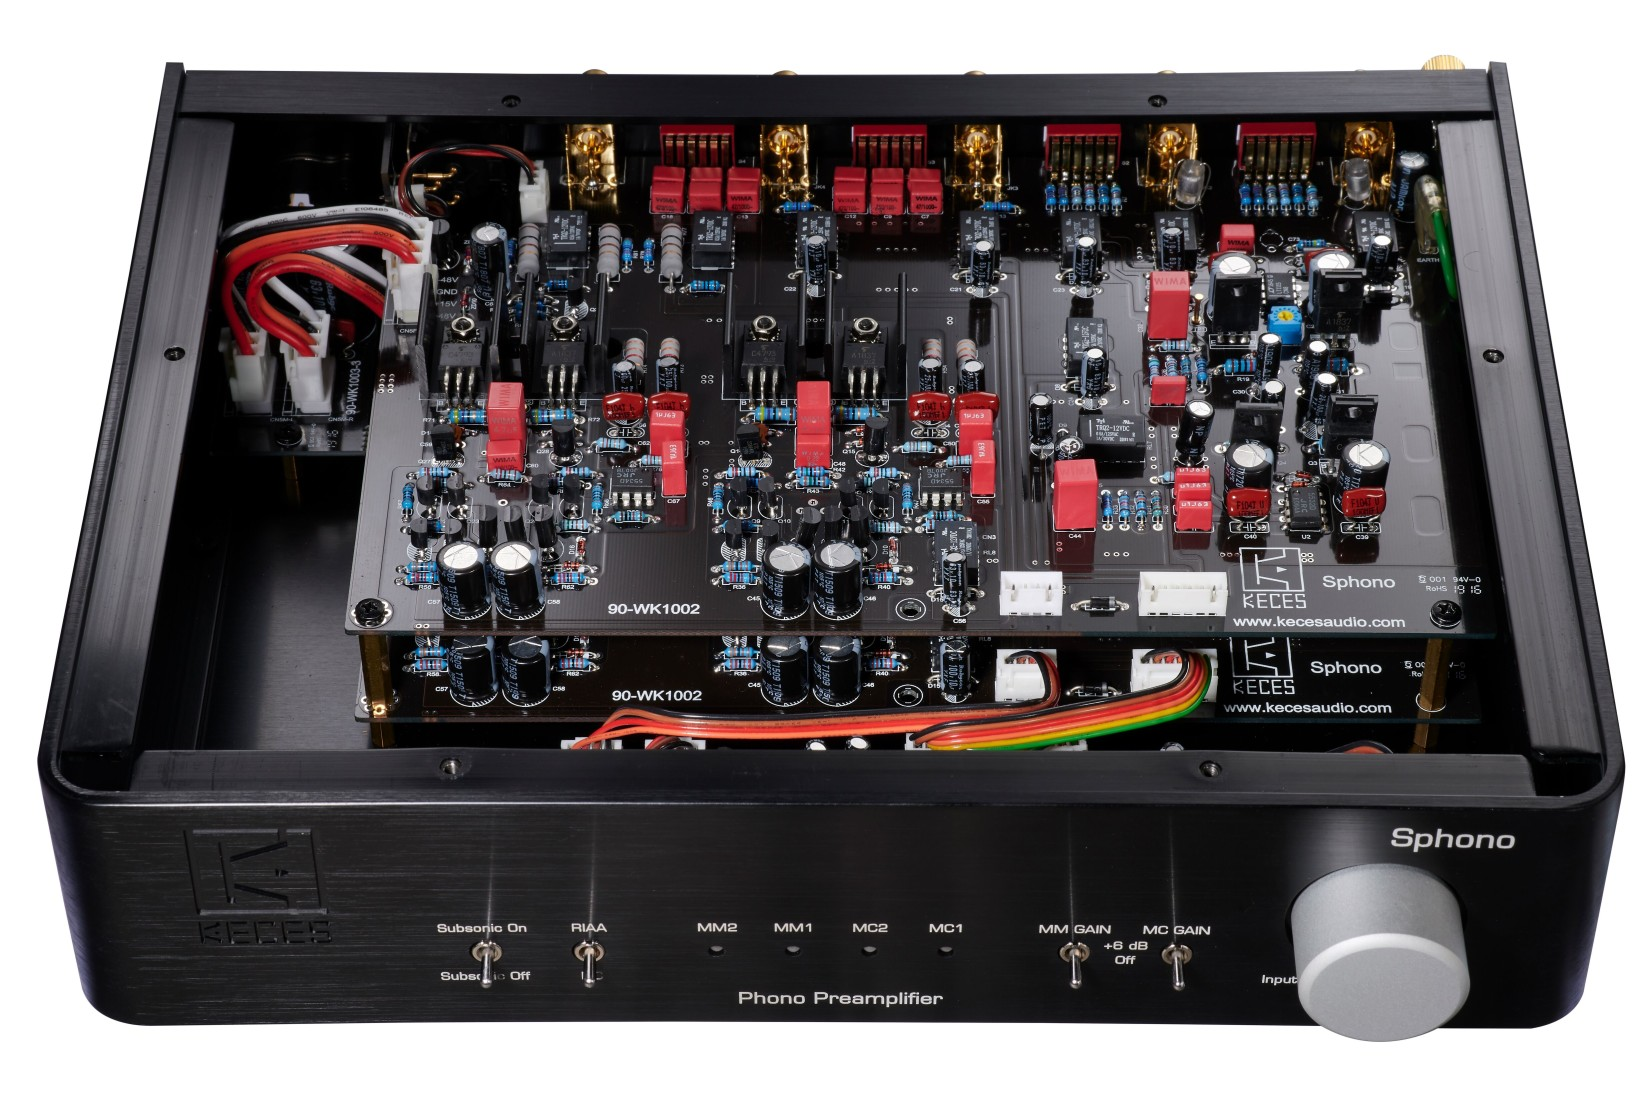 Keces-S-Phono-2